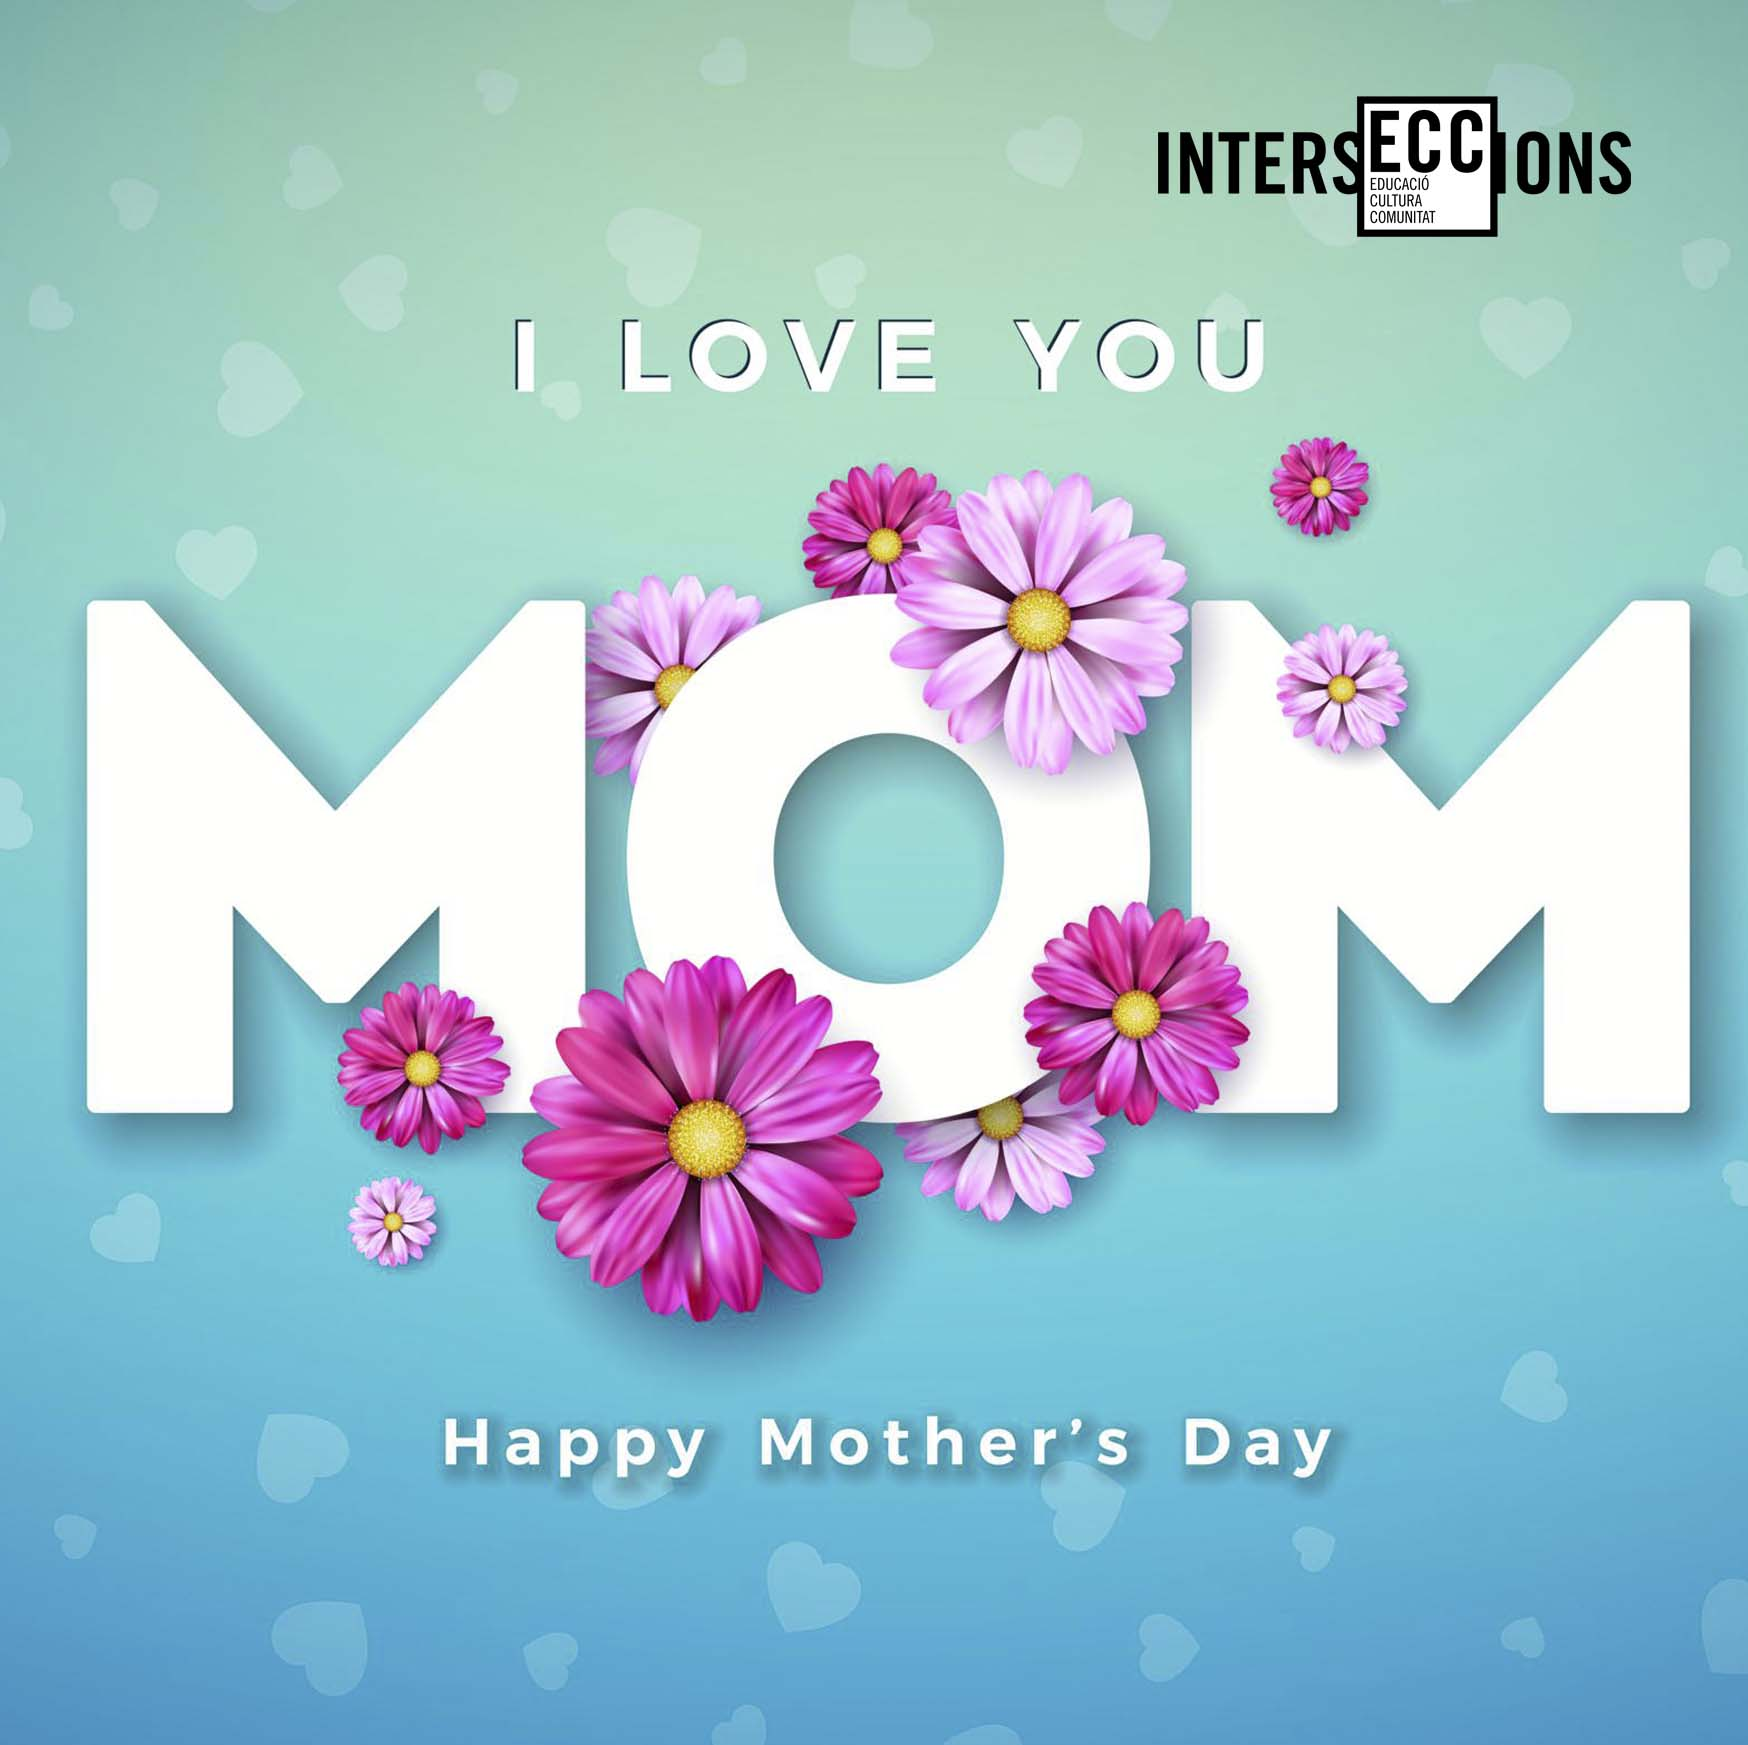 Happy and love Mother's Day